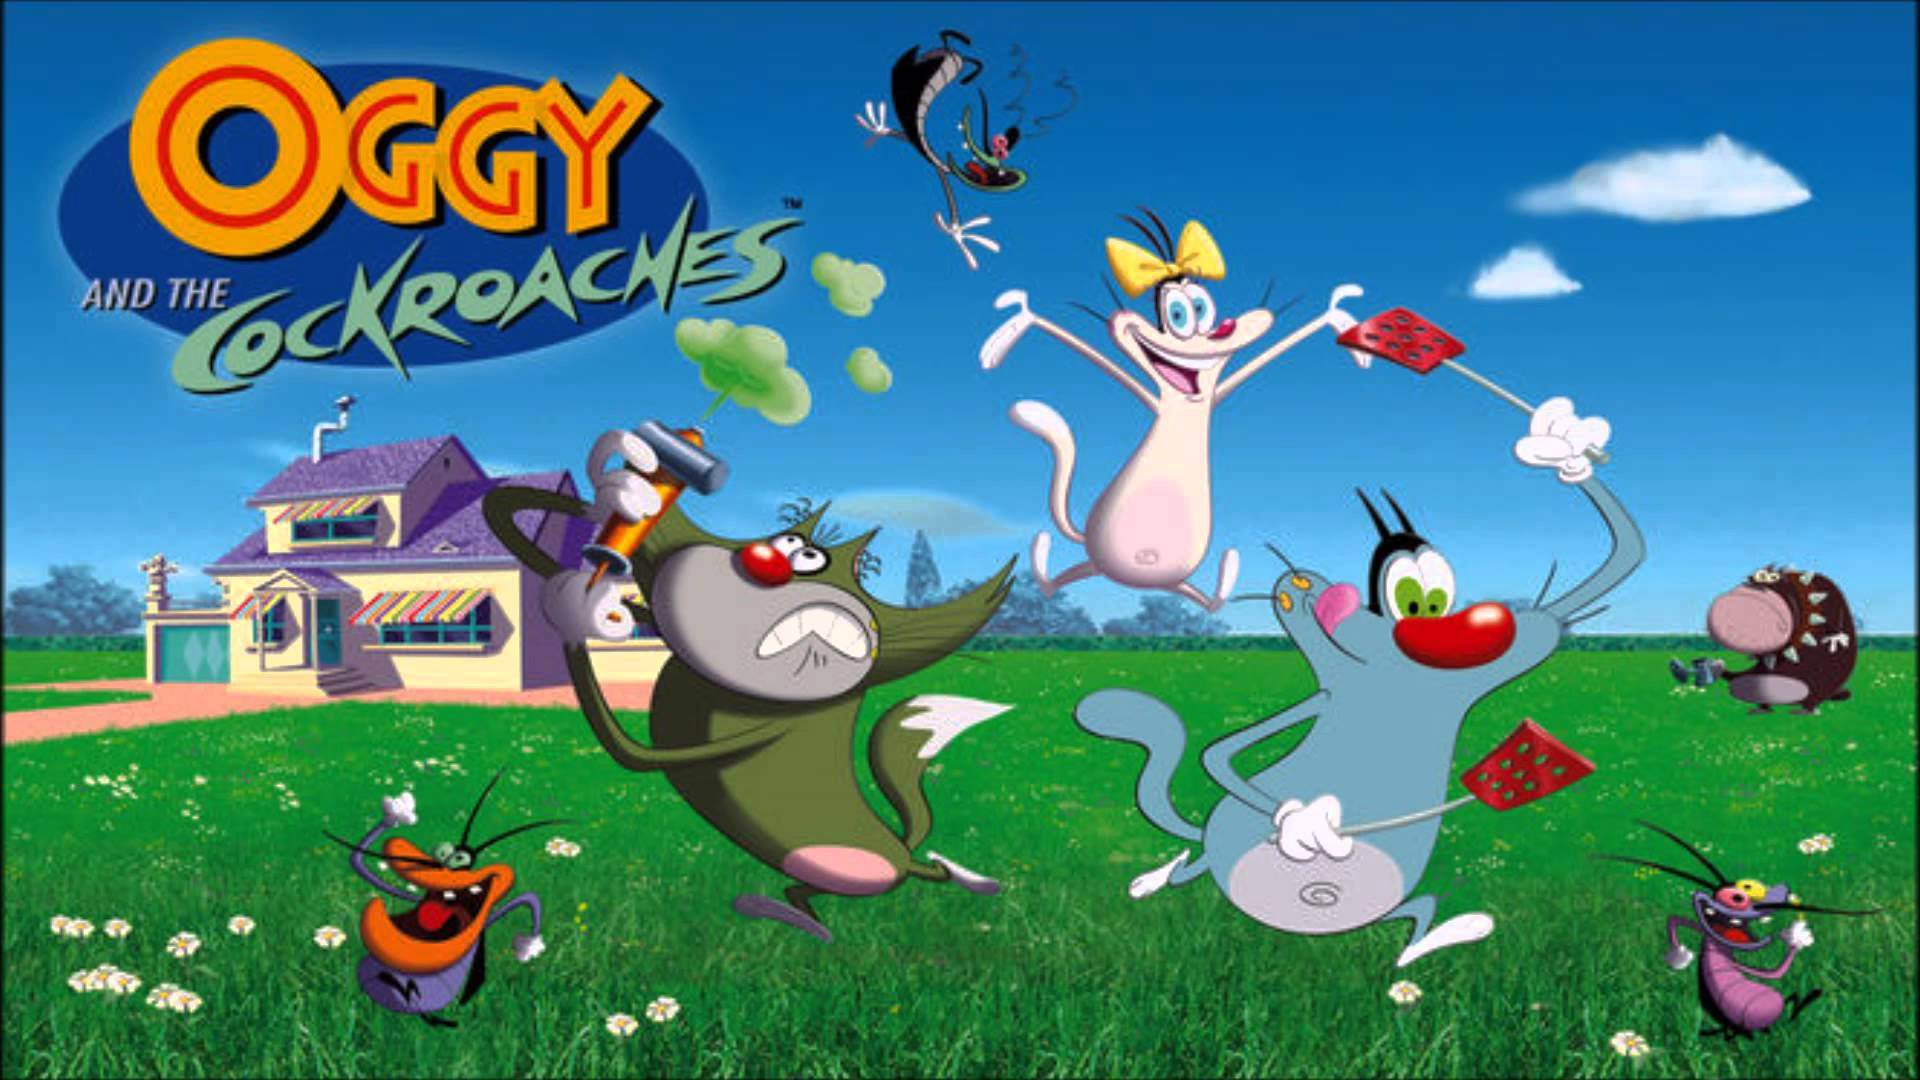 How to download the official oggy and the cockroaches game on.